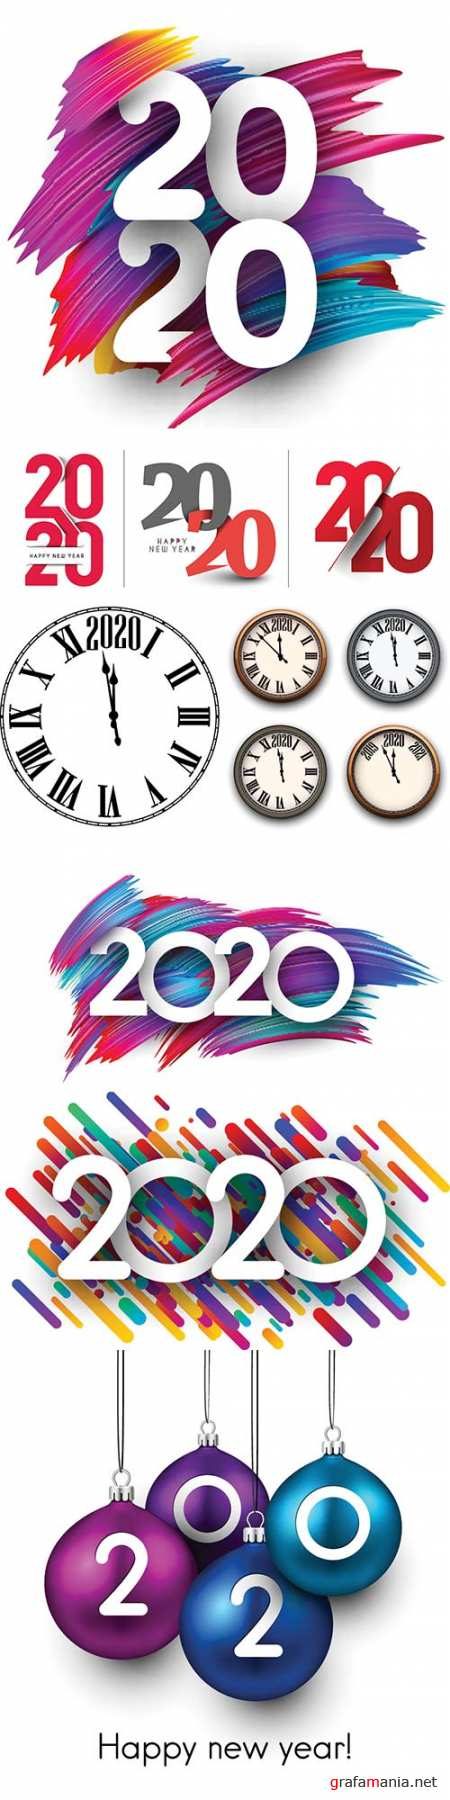 Happy New Year 2020 greeting card with color gradient